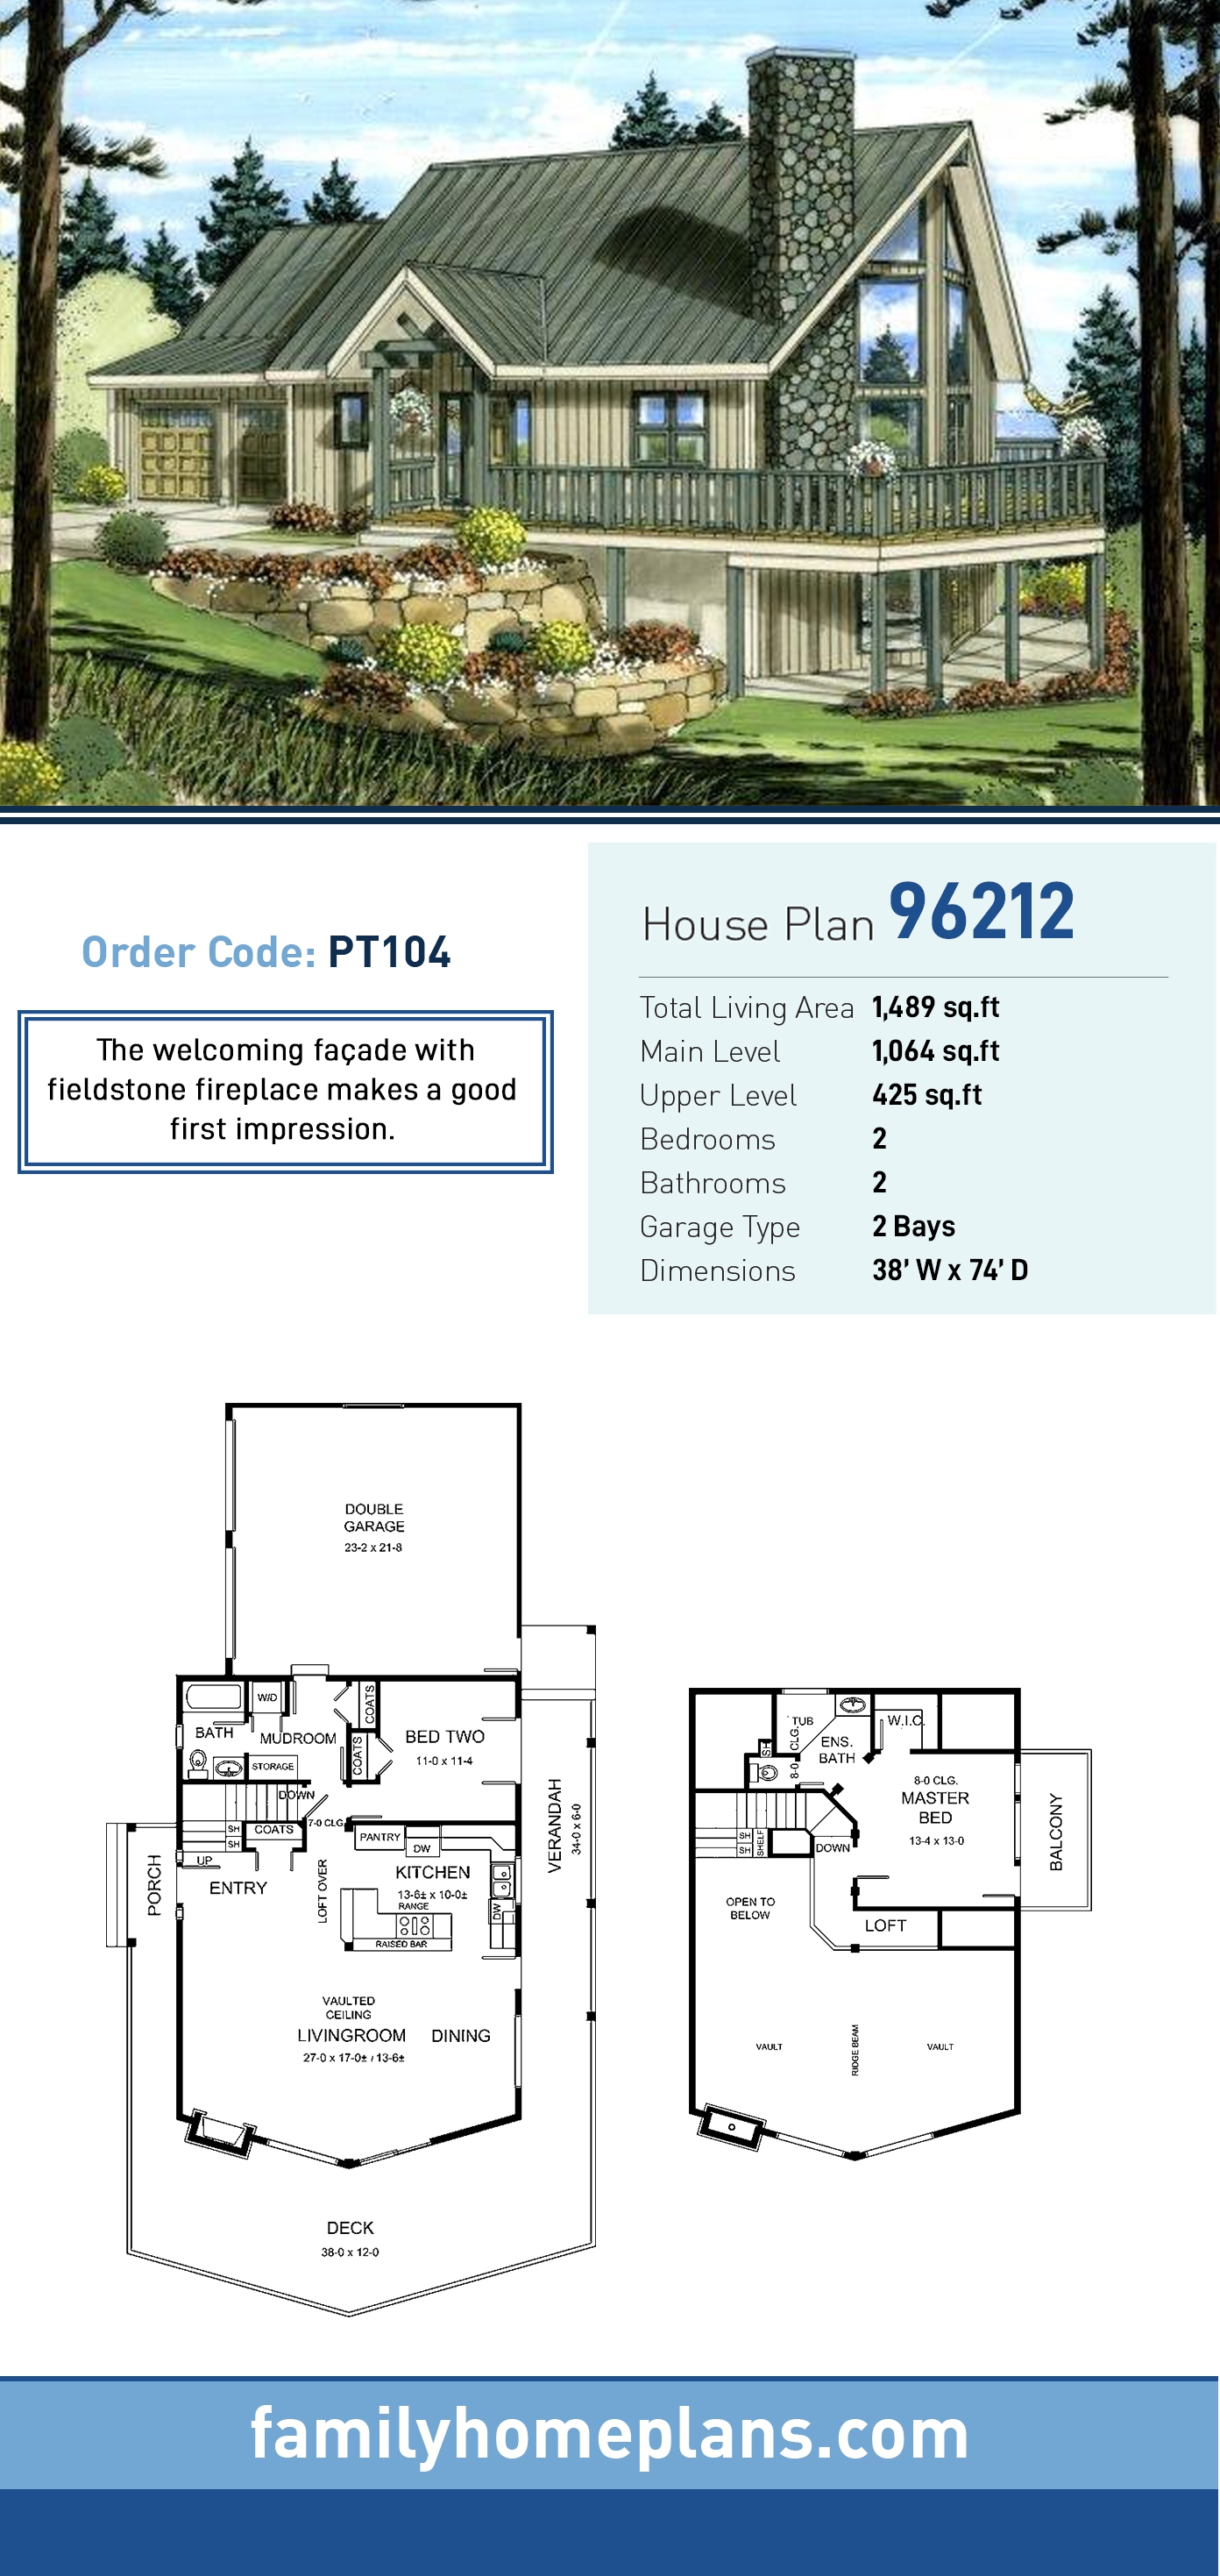 Contemporary House Plan 96212 with 2 Beds, 2 Baths, 2 Car Garage